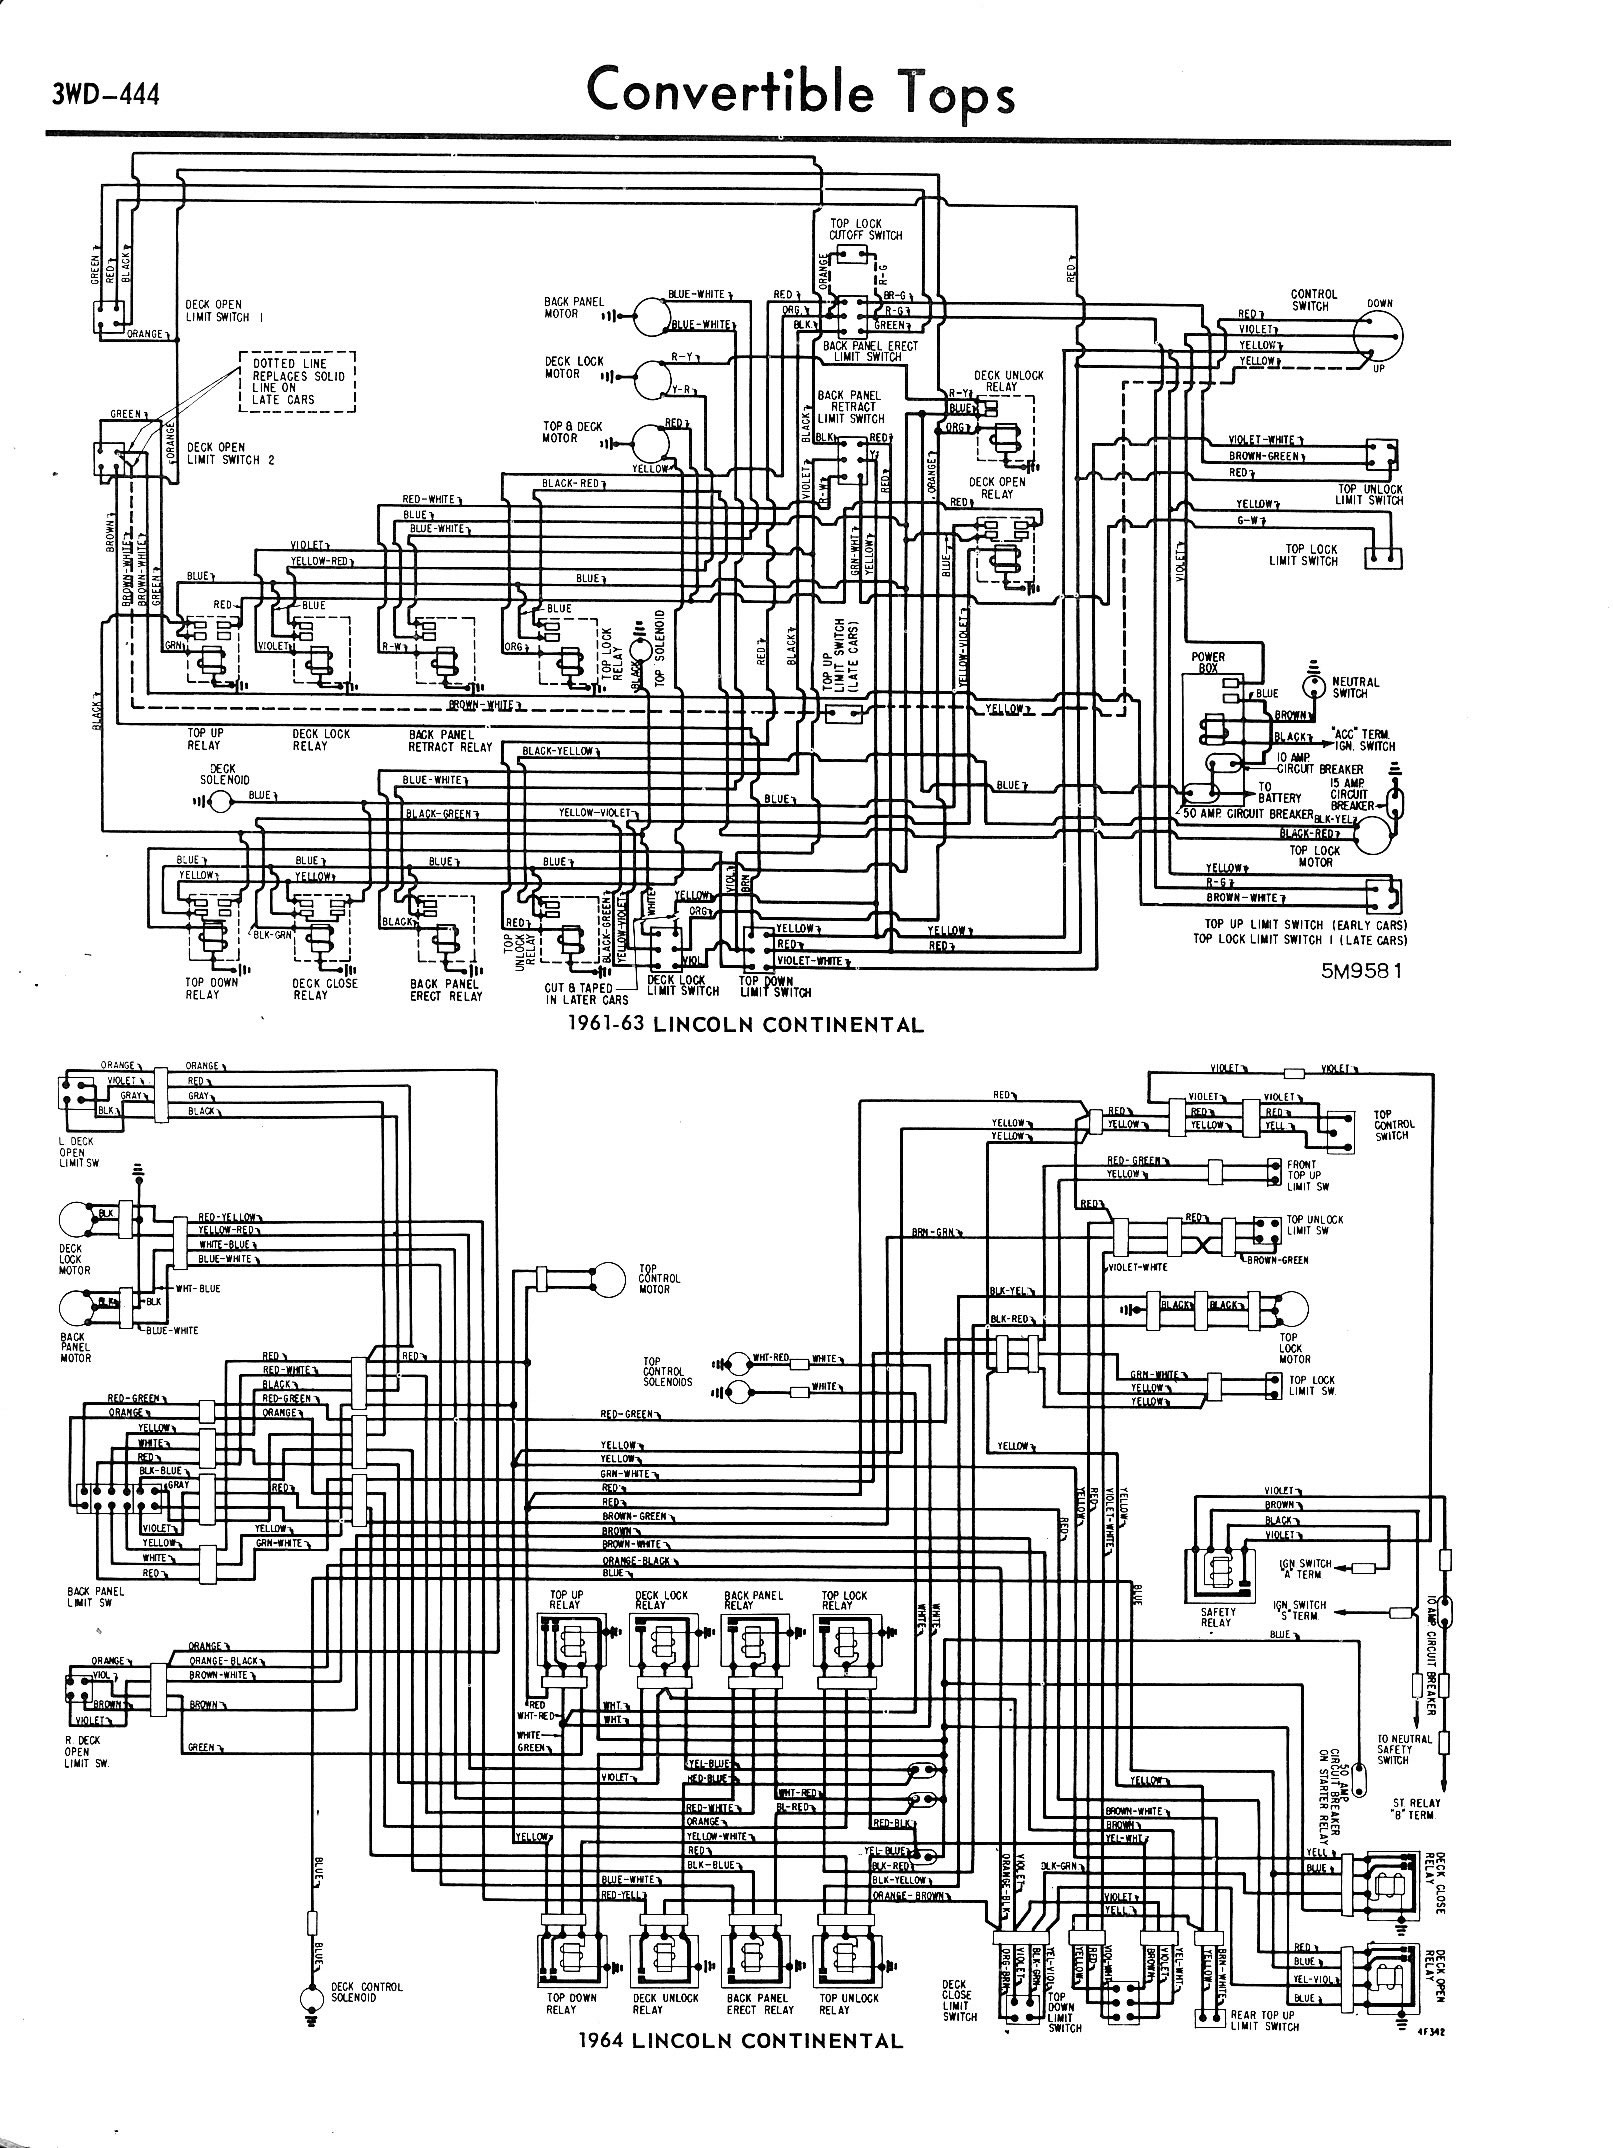 1966 Lincoln Continental Wiring Diagram 1966 Lincoln Continental 4 on starter relay outlets, stator wiring, starter kill relay diagram, starter relay circuits, starter relay grounding, diode wiring, boat motor wiring, starter relay cable, starter relay fuse, starter relay welding, electric motor wiring, starter relay bypass, starter clutch, starter relay test, 12v dc wiring, starter relay switch, starter solenoid, starter relay operation, starter relay schematic, starter relay clicking,